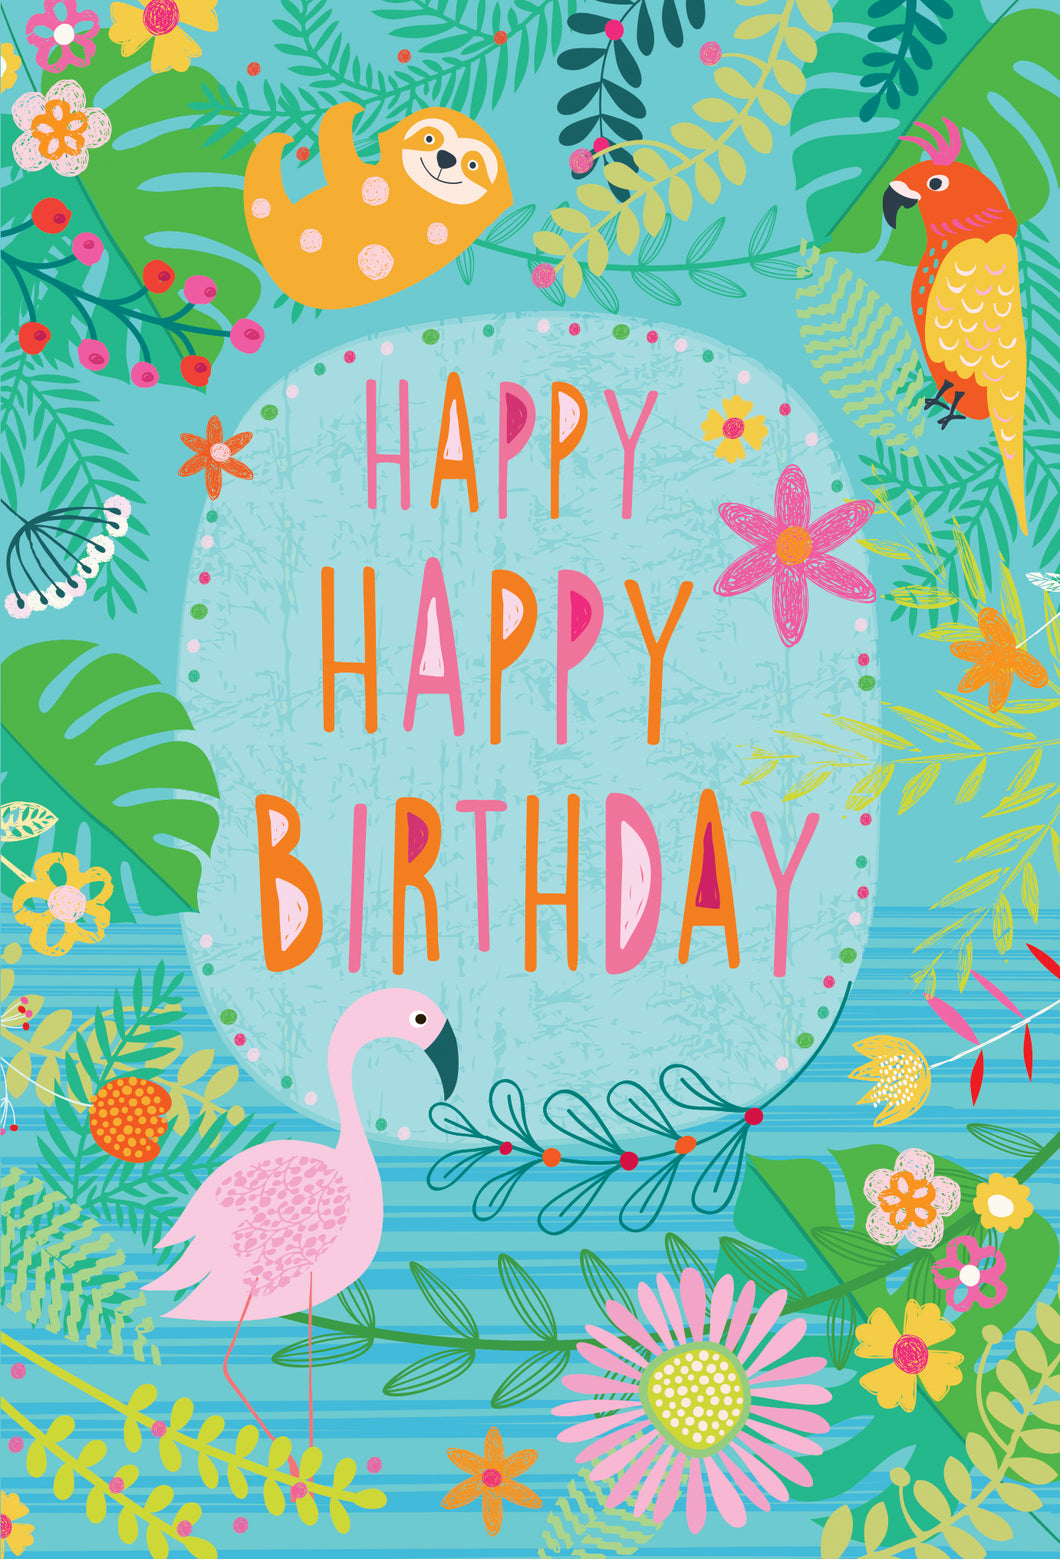 Birthday Card Colorful With Animals